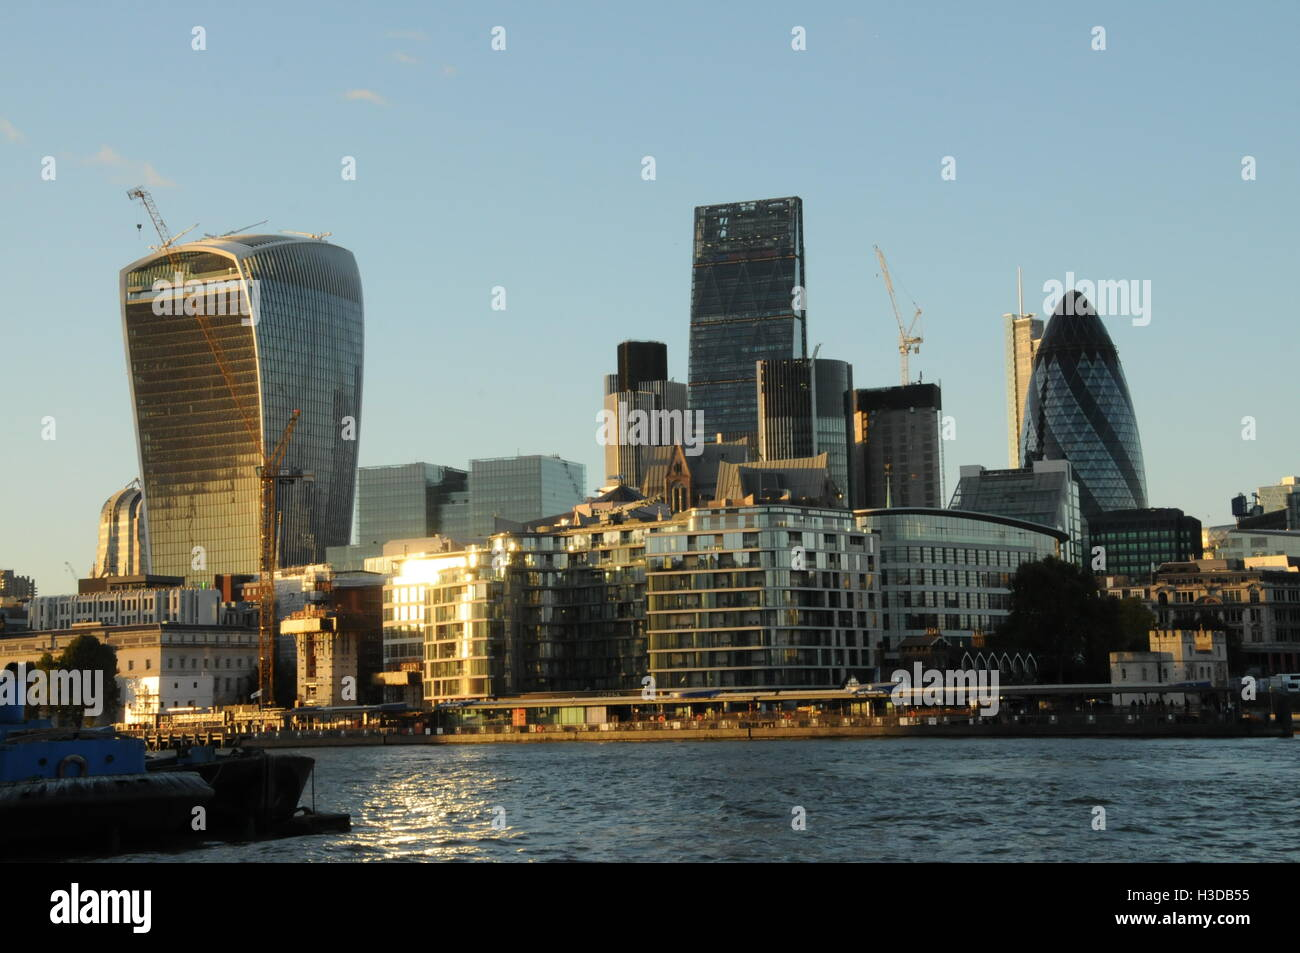 A view of The City, from Southwark, London. - Stock Image